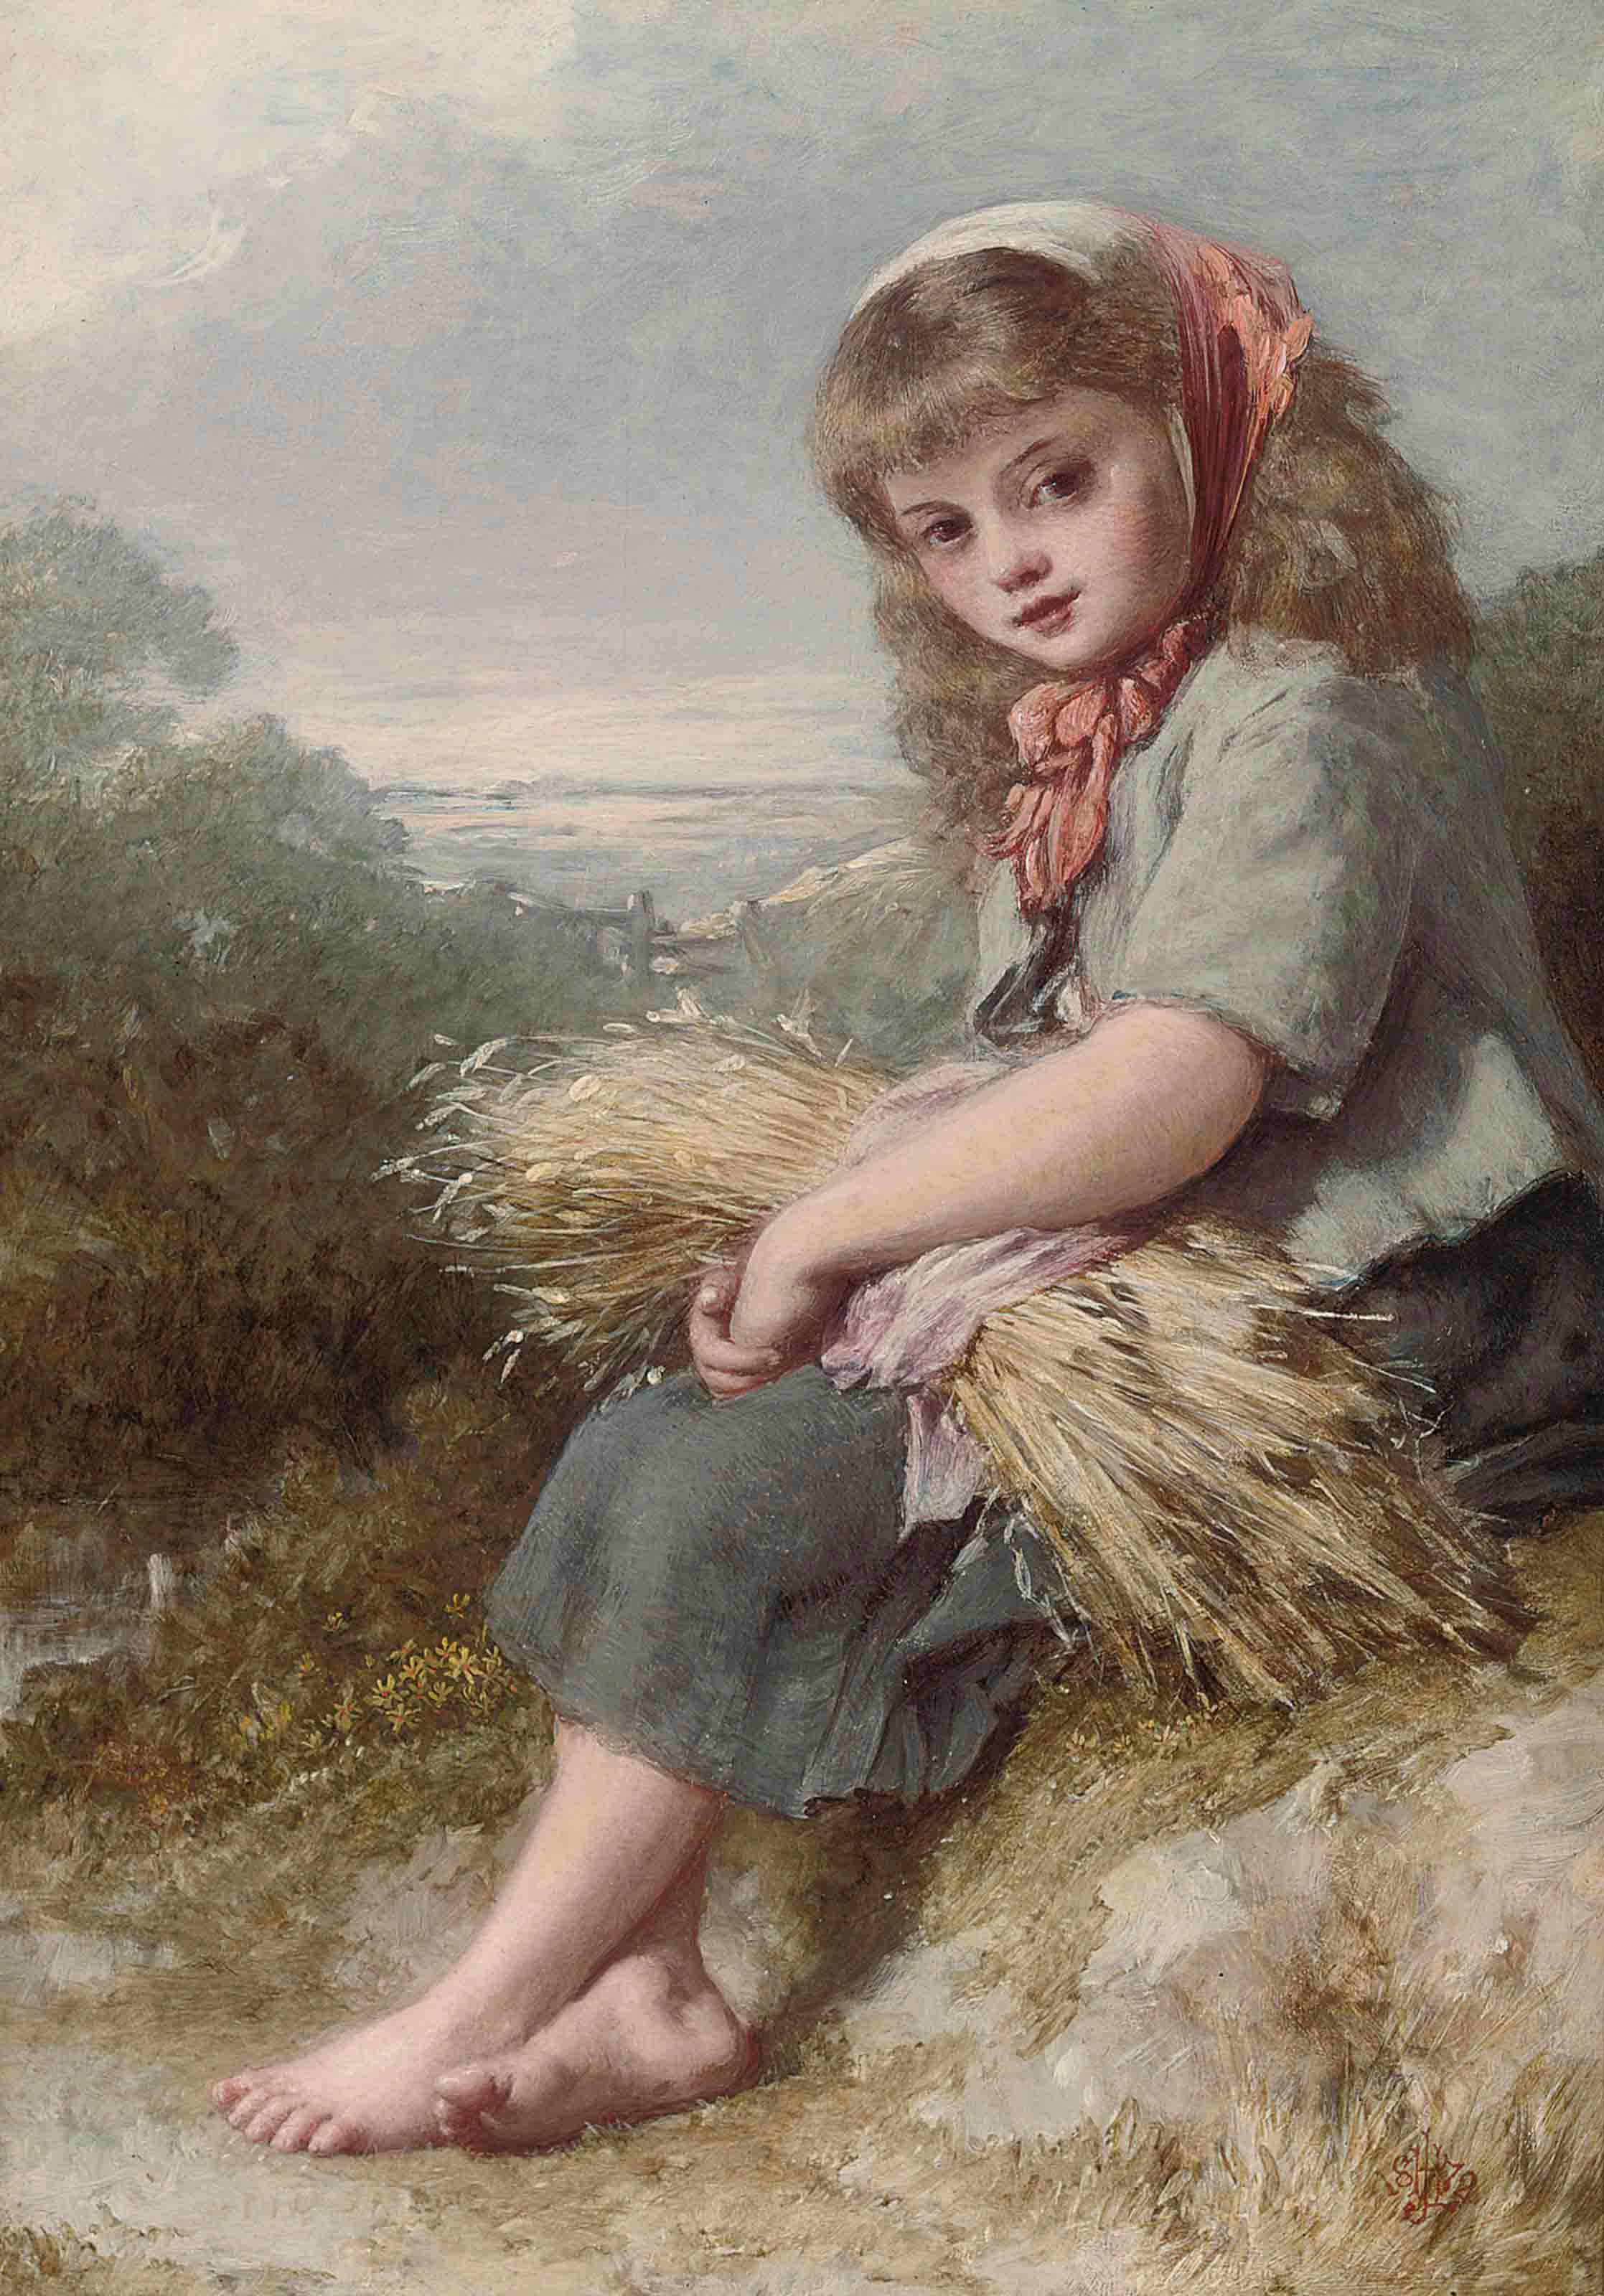 The young harvester